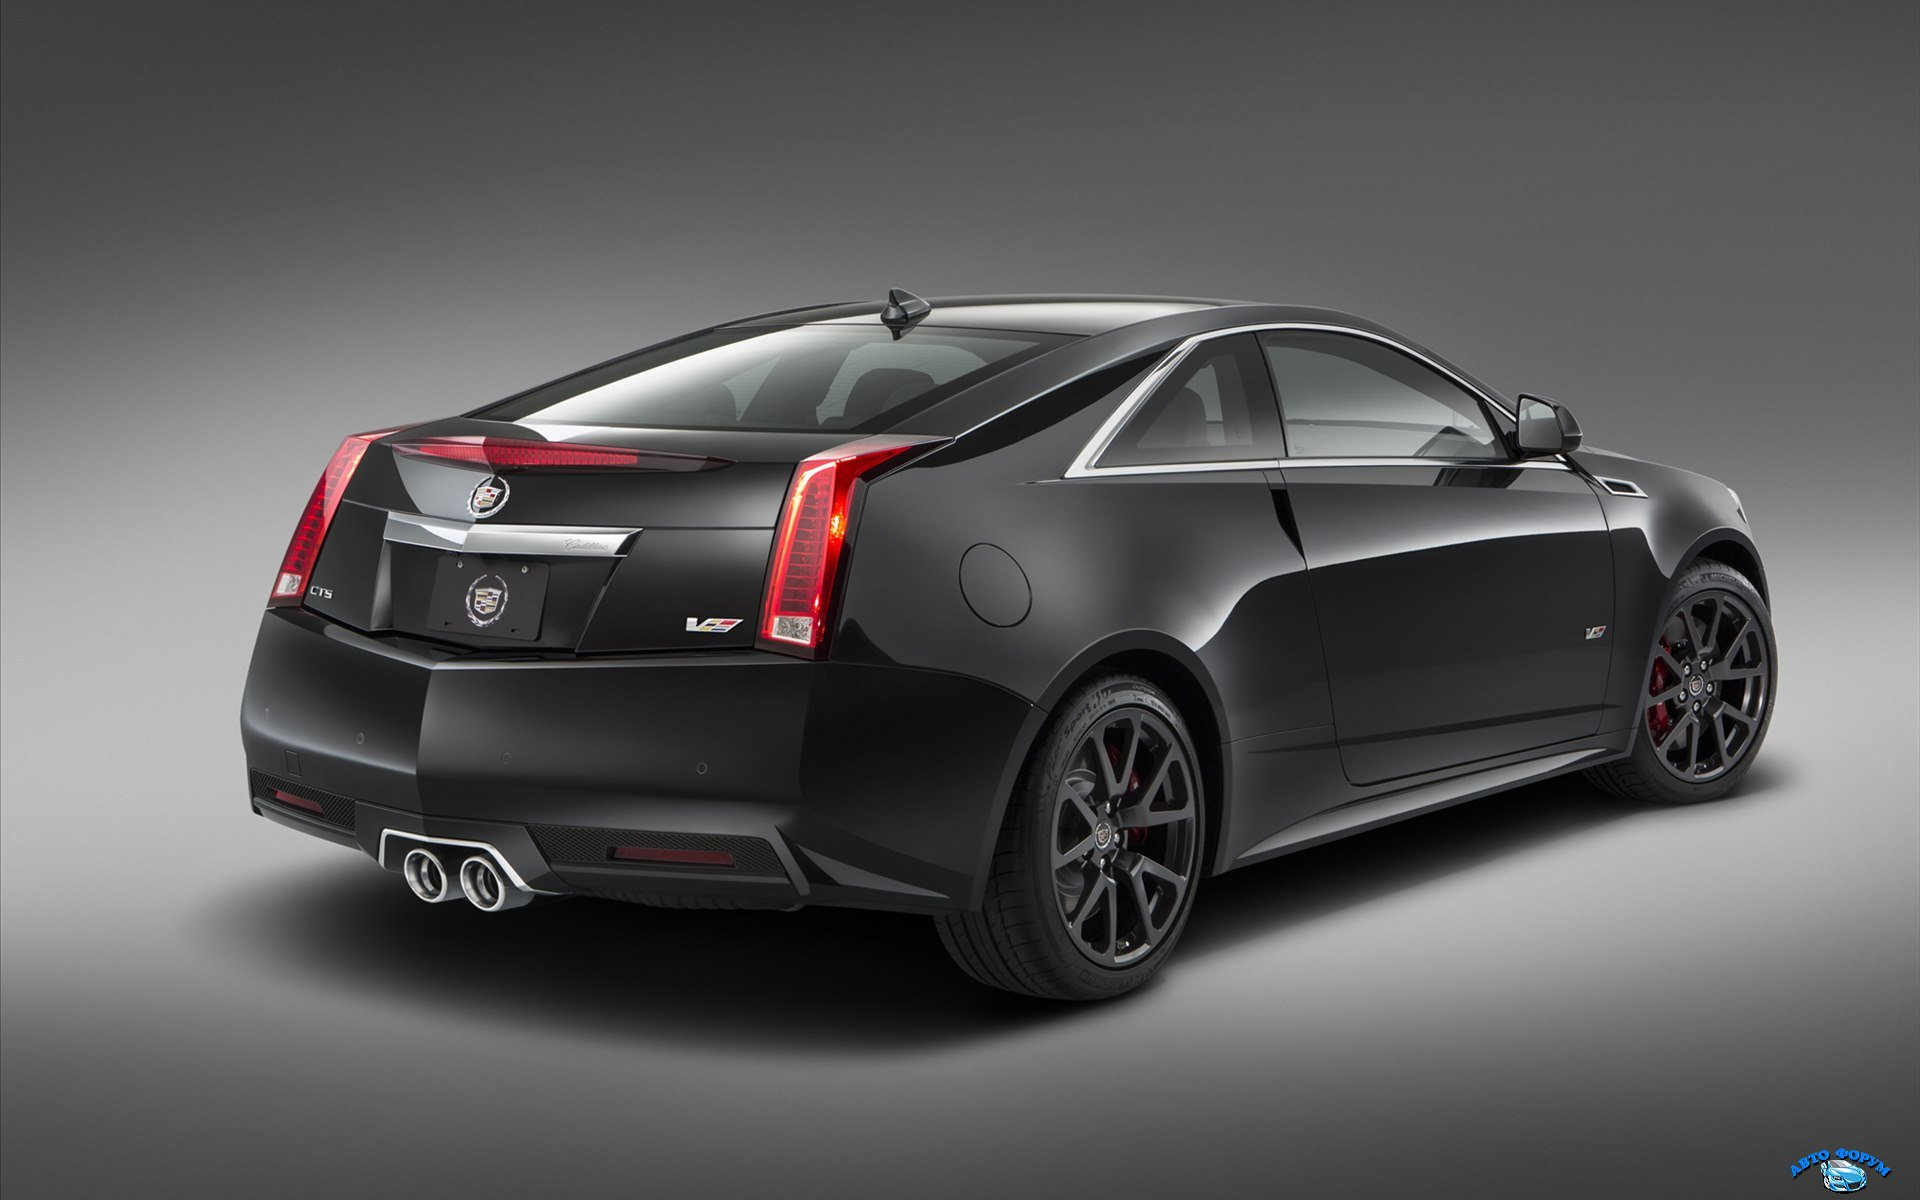 Cadillac-CTS-V-Coupe-2015-widescreen-02.jpg